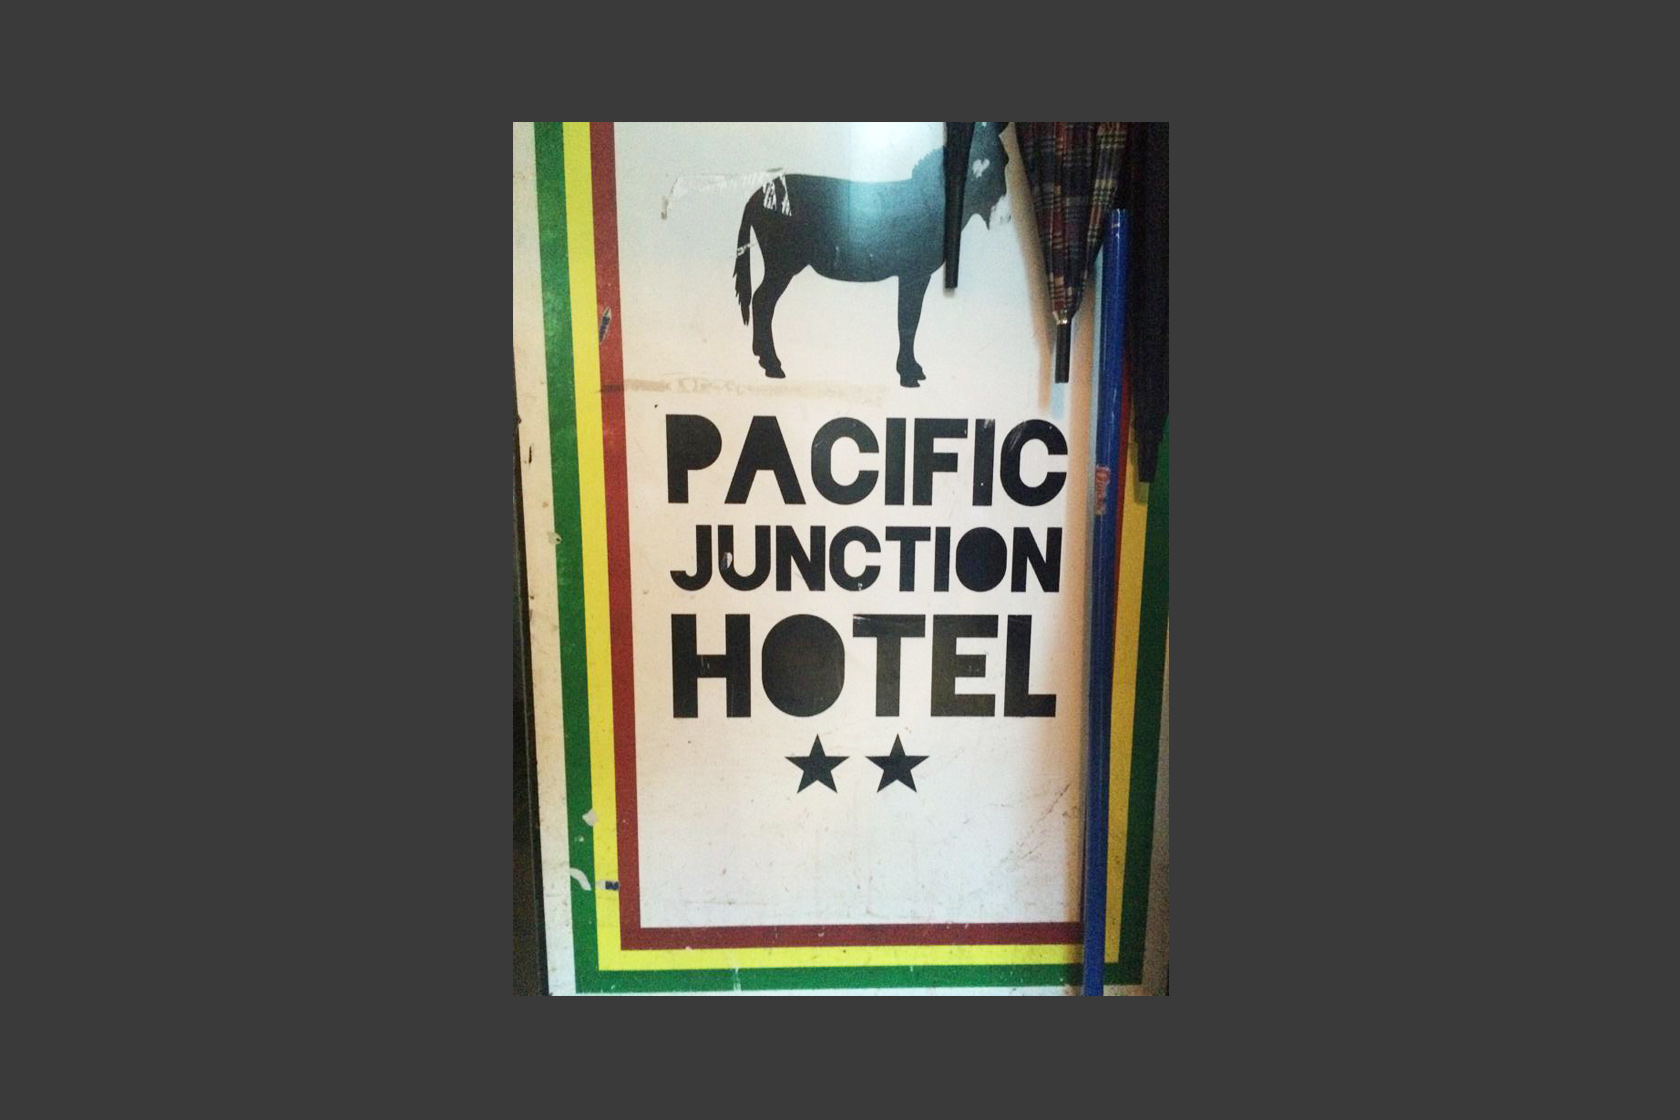 Live Painting Performance, Pacific Junction Hotel, June 6 2015